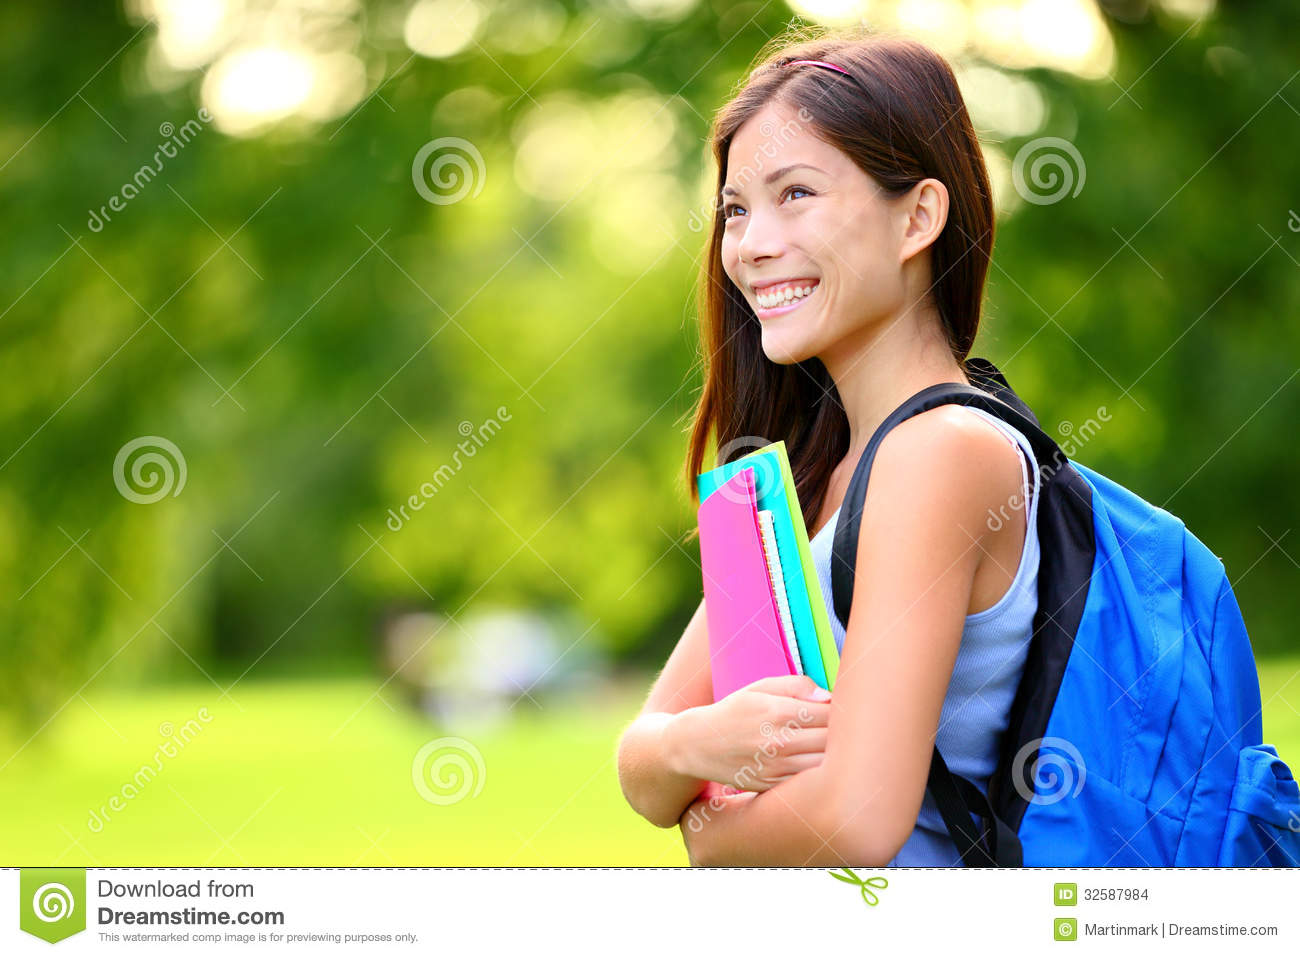 University / college student girl looking happy smiling with book or ...